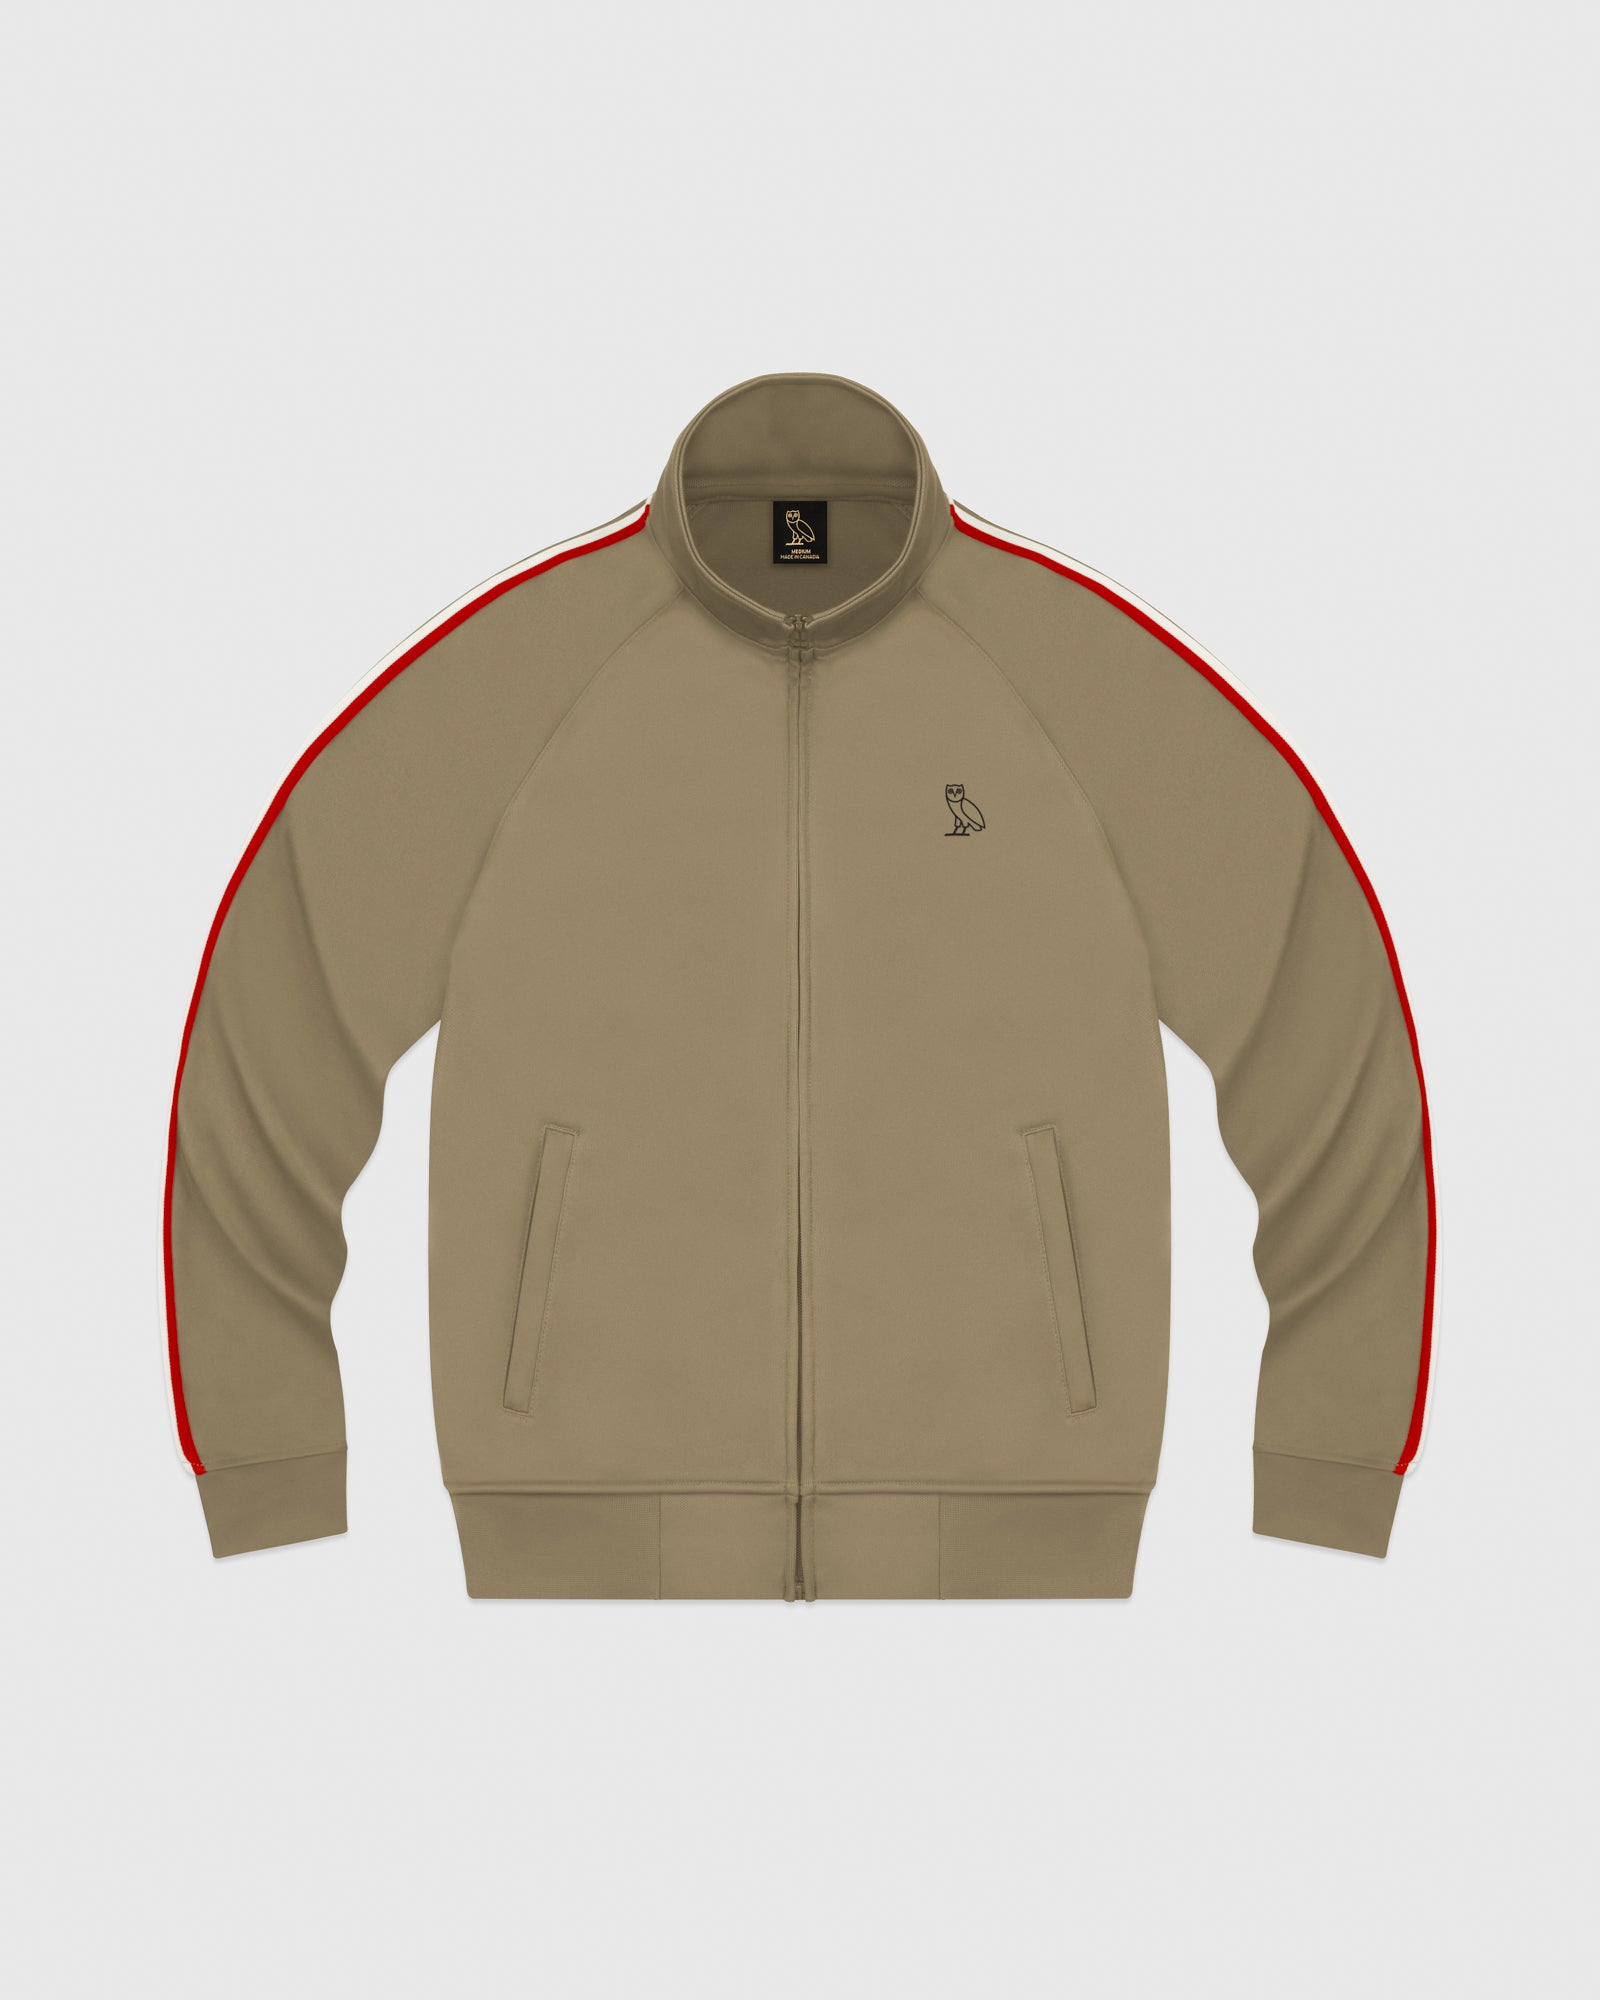 92f9cb8b8821 OVO PIQUE JACKET - KHAKI – October s Very Own Online US